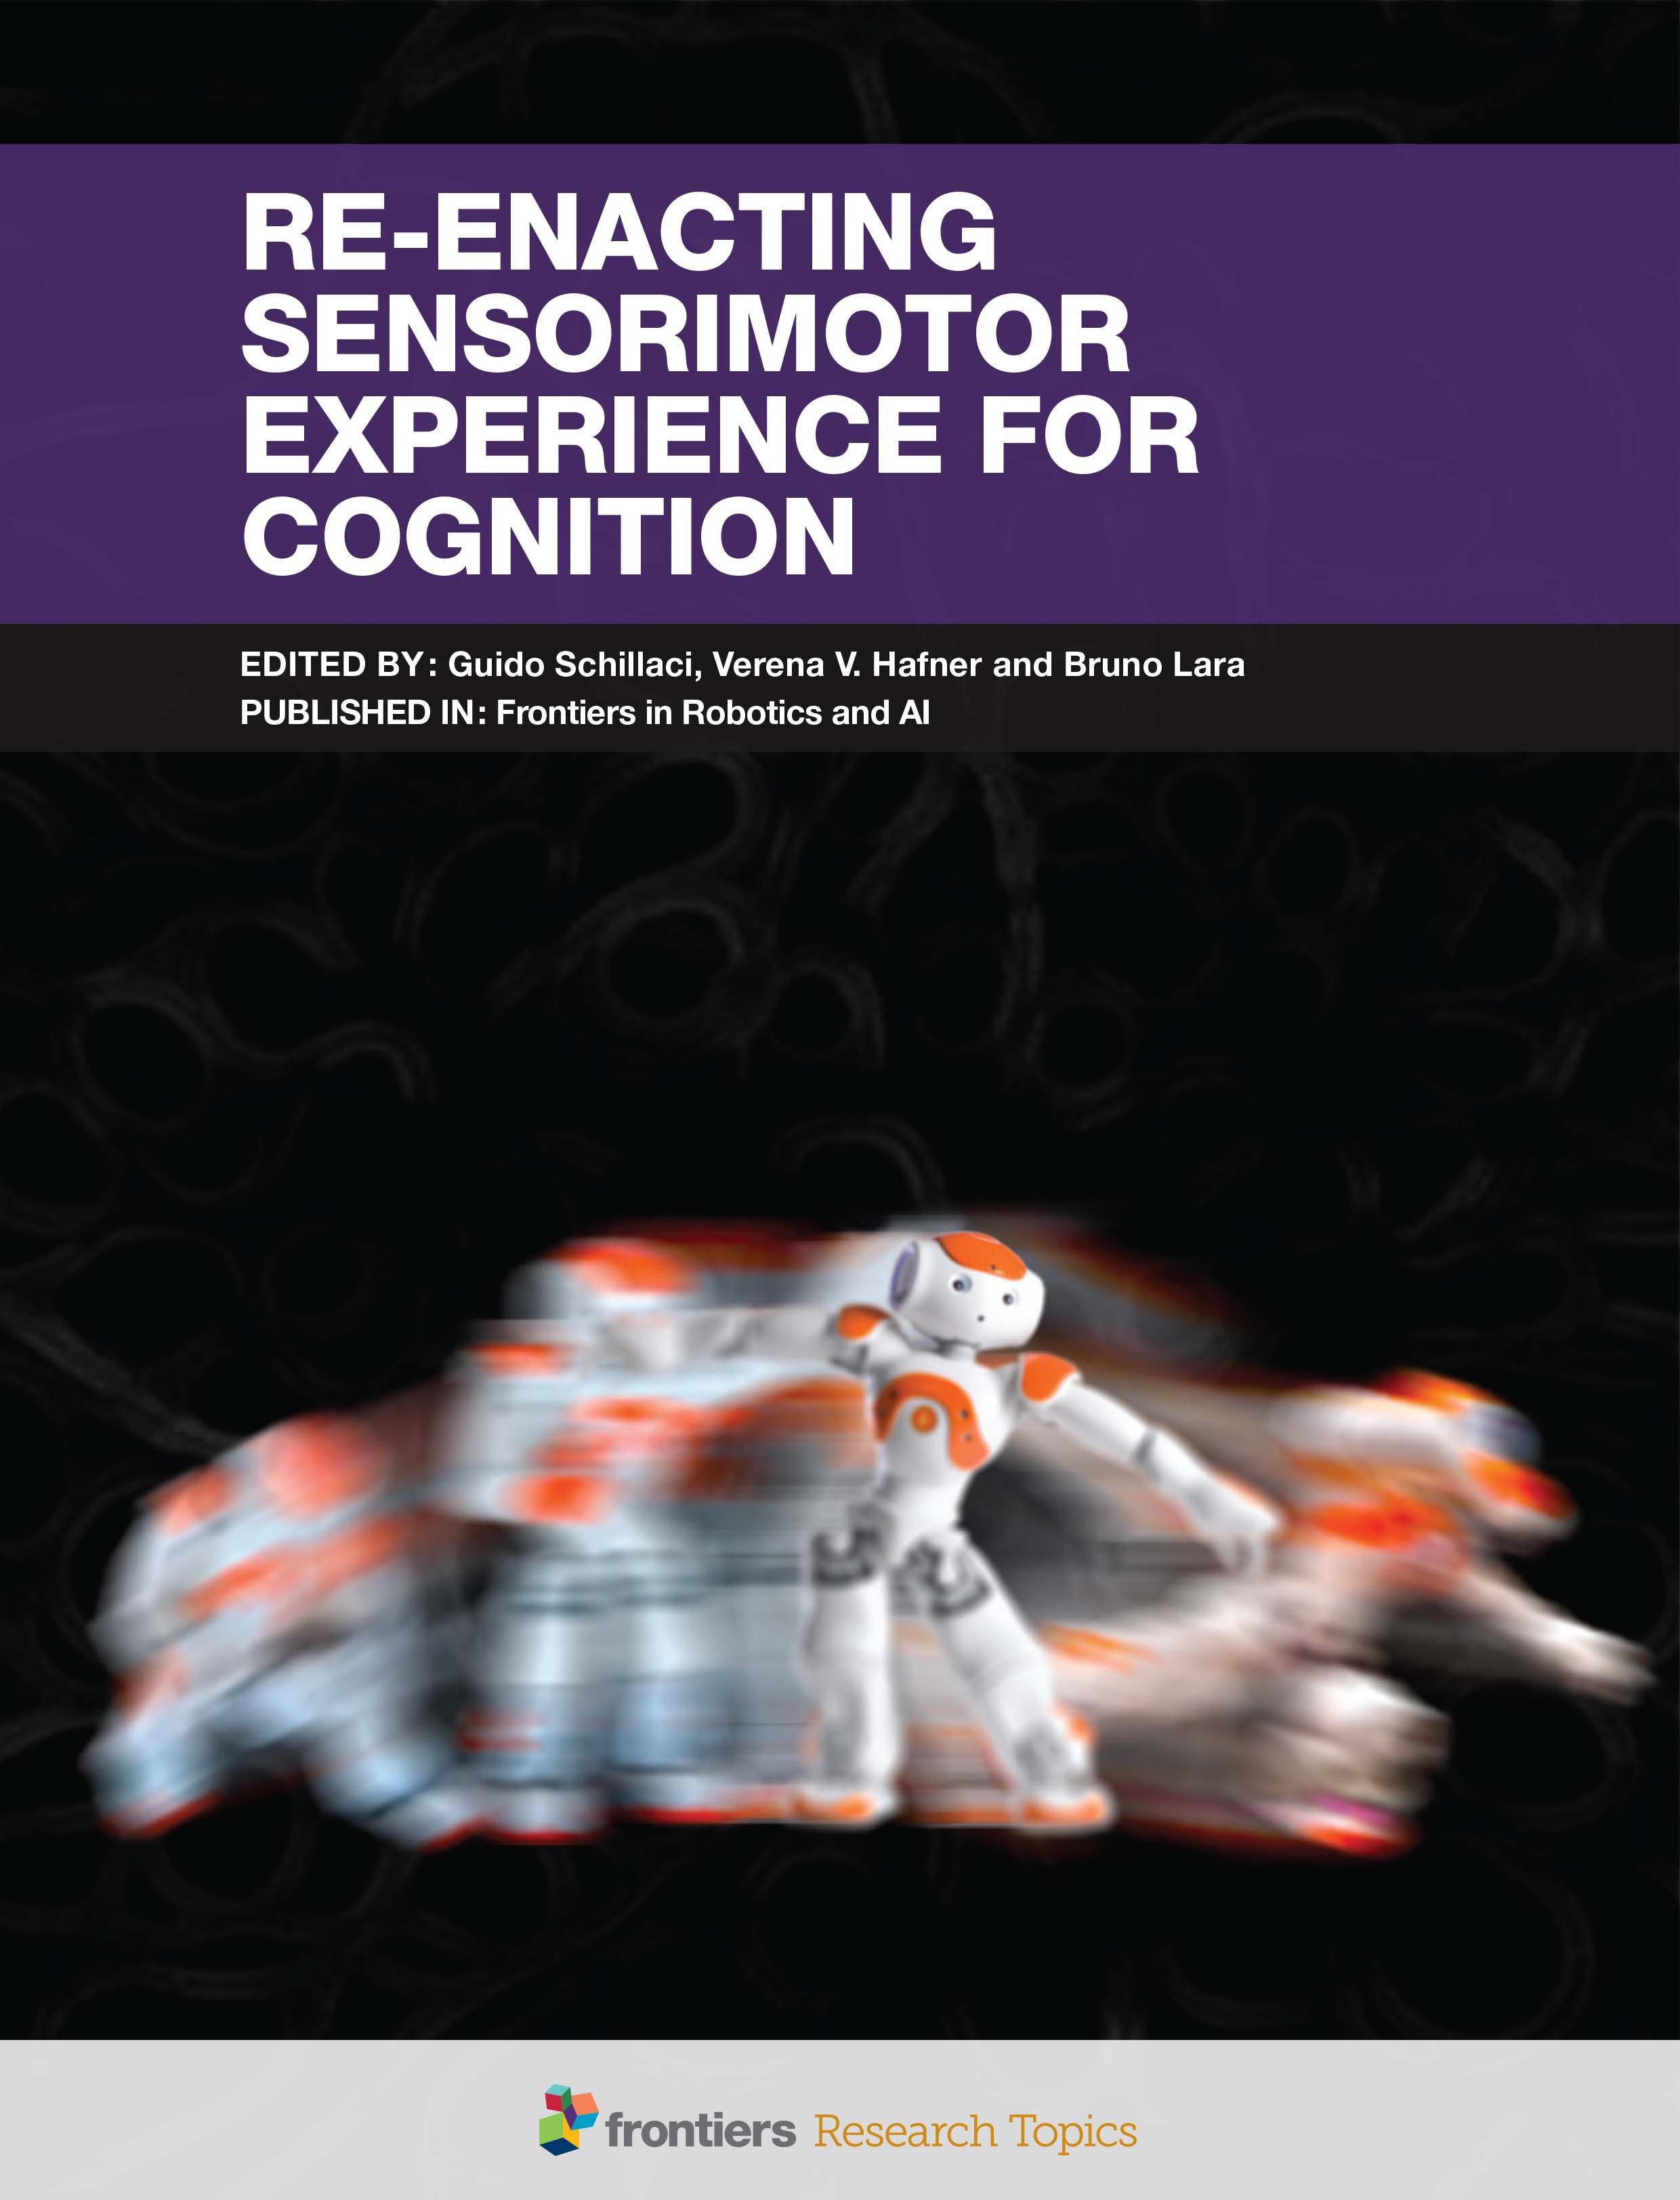 Re-Enacting Sensorimotor Experience for Cognition